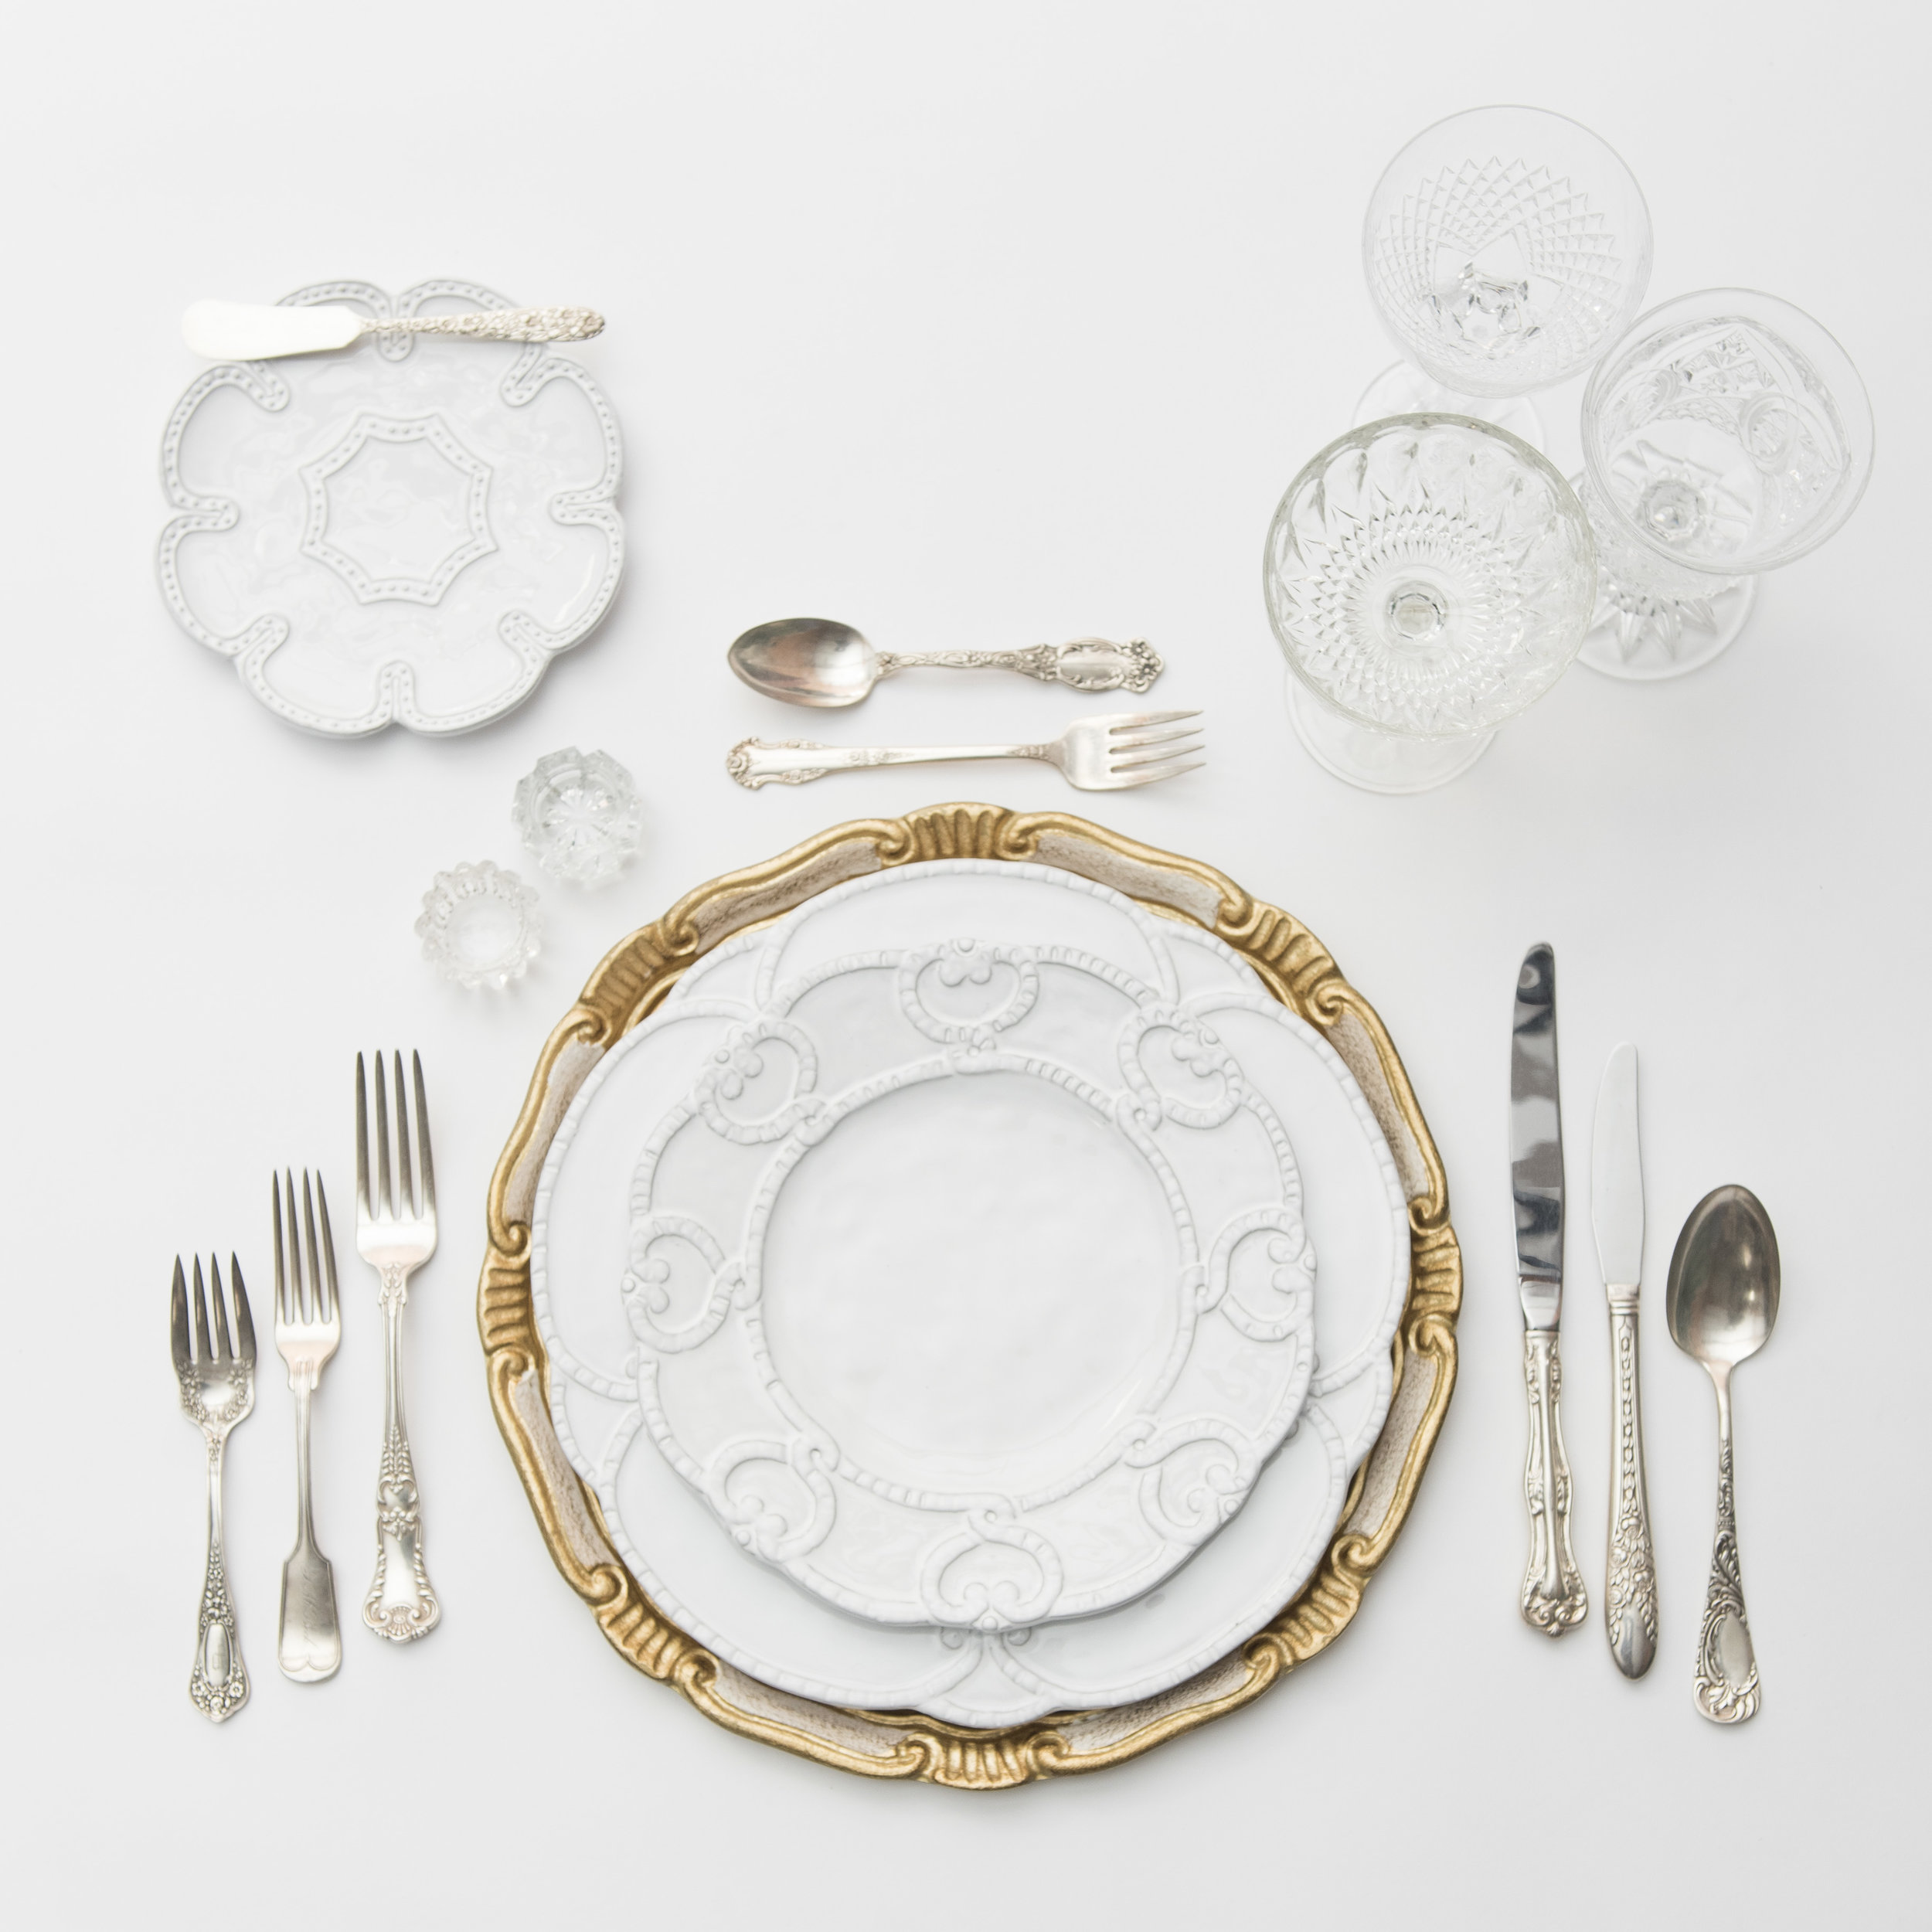 RENT: Florentine Chargers in White/Gold + Signature Collection Dinnerware + Antique Silver Flatware + Vintage Cut Crystal Goblets + Early American Pressed Glass Goblets + Vintage Champagne Coupes + Antique Crystal Salt Cellars  SHOP:Florentine Chargers in White/Gold